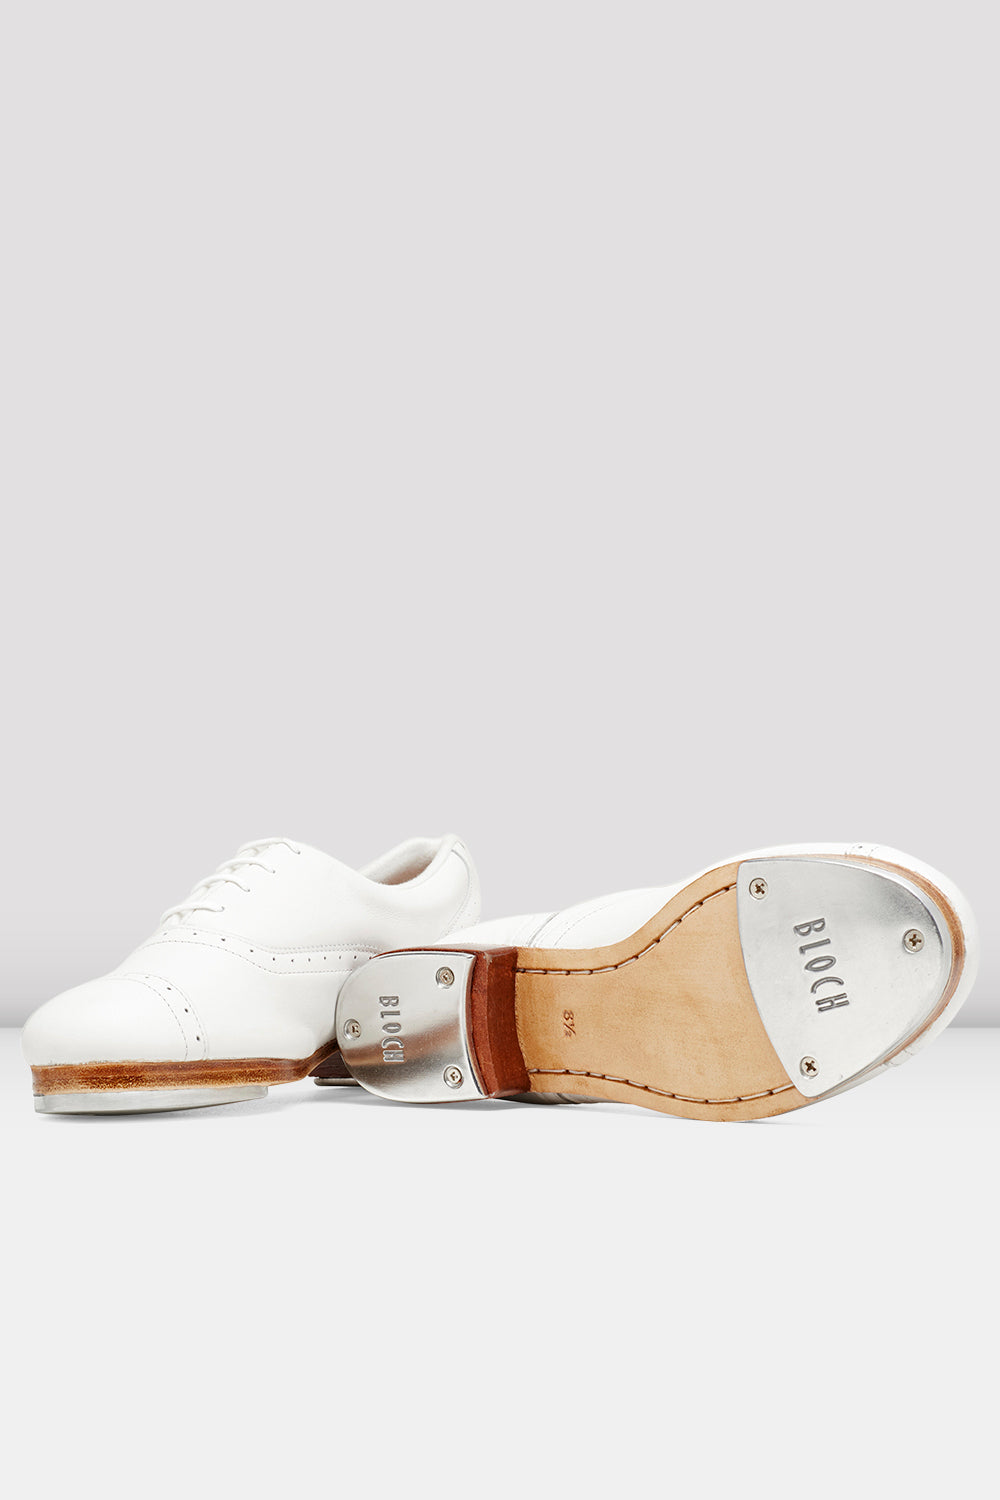 White leather Bloch Ladies Jason Samuels Smith Tap Shoes pair of shoes view of top and bottom of shoe